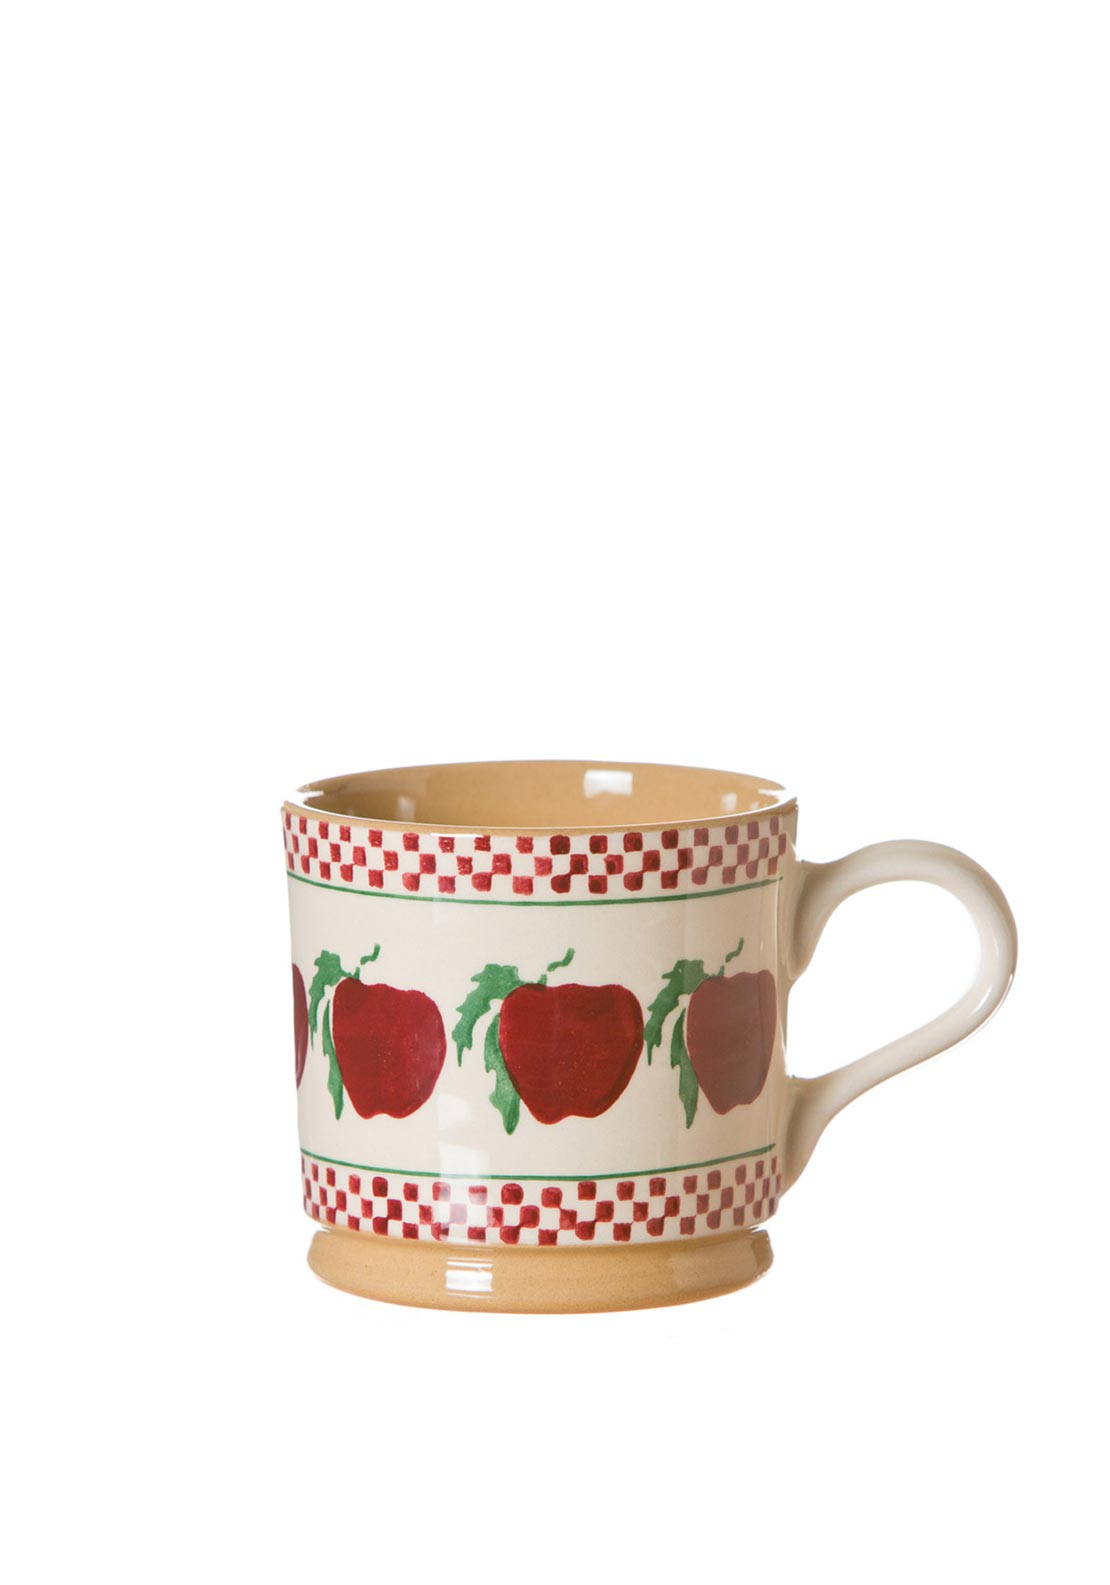 Nicholas Mosse Pottery Apple Mug, Large